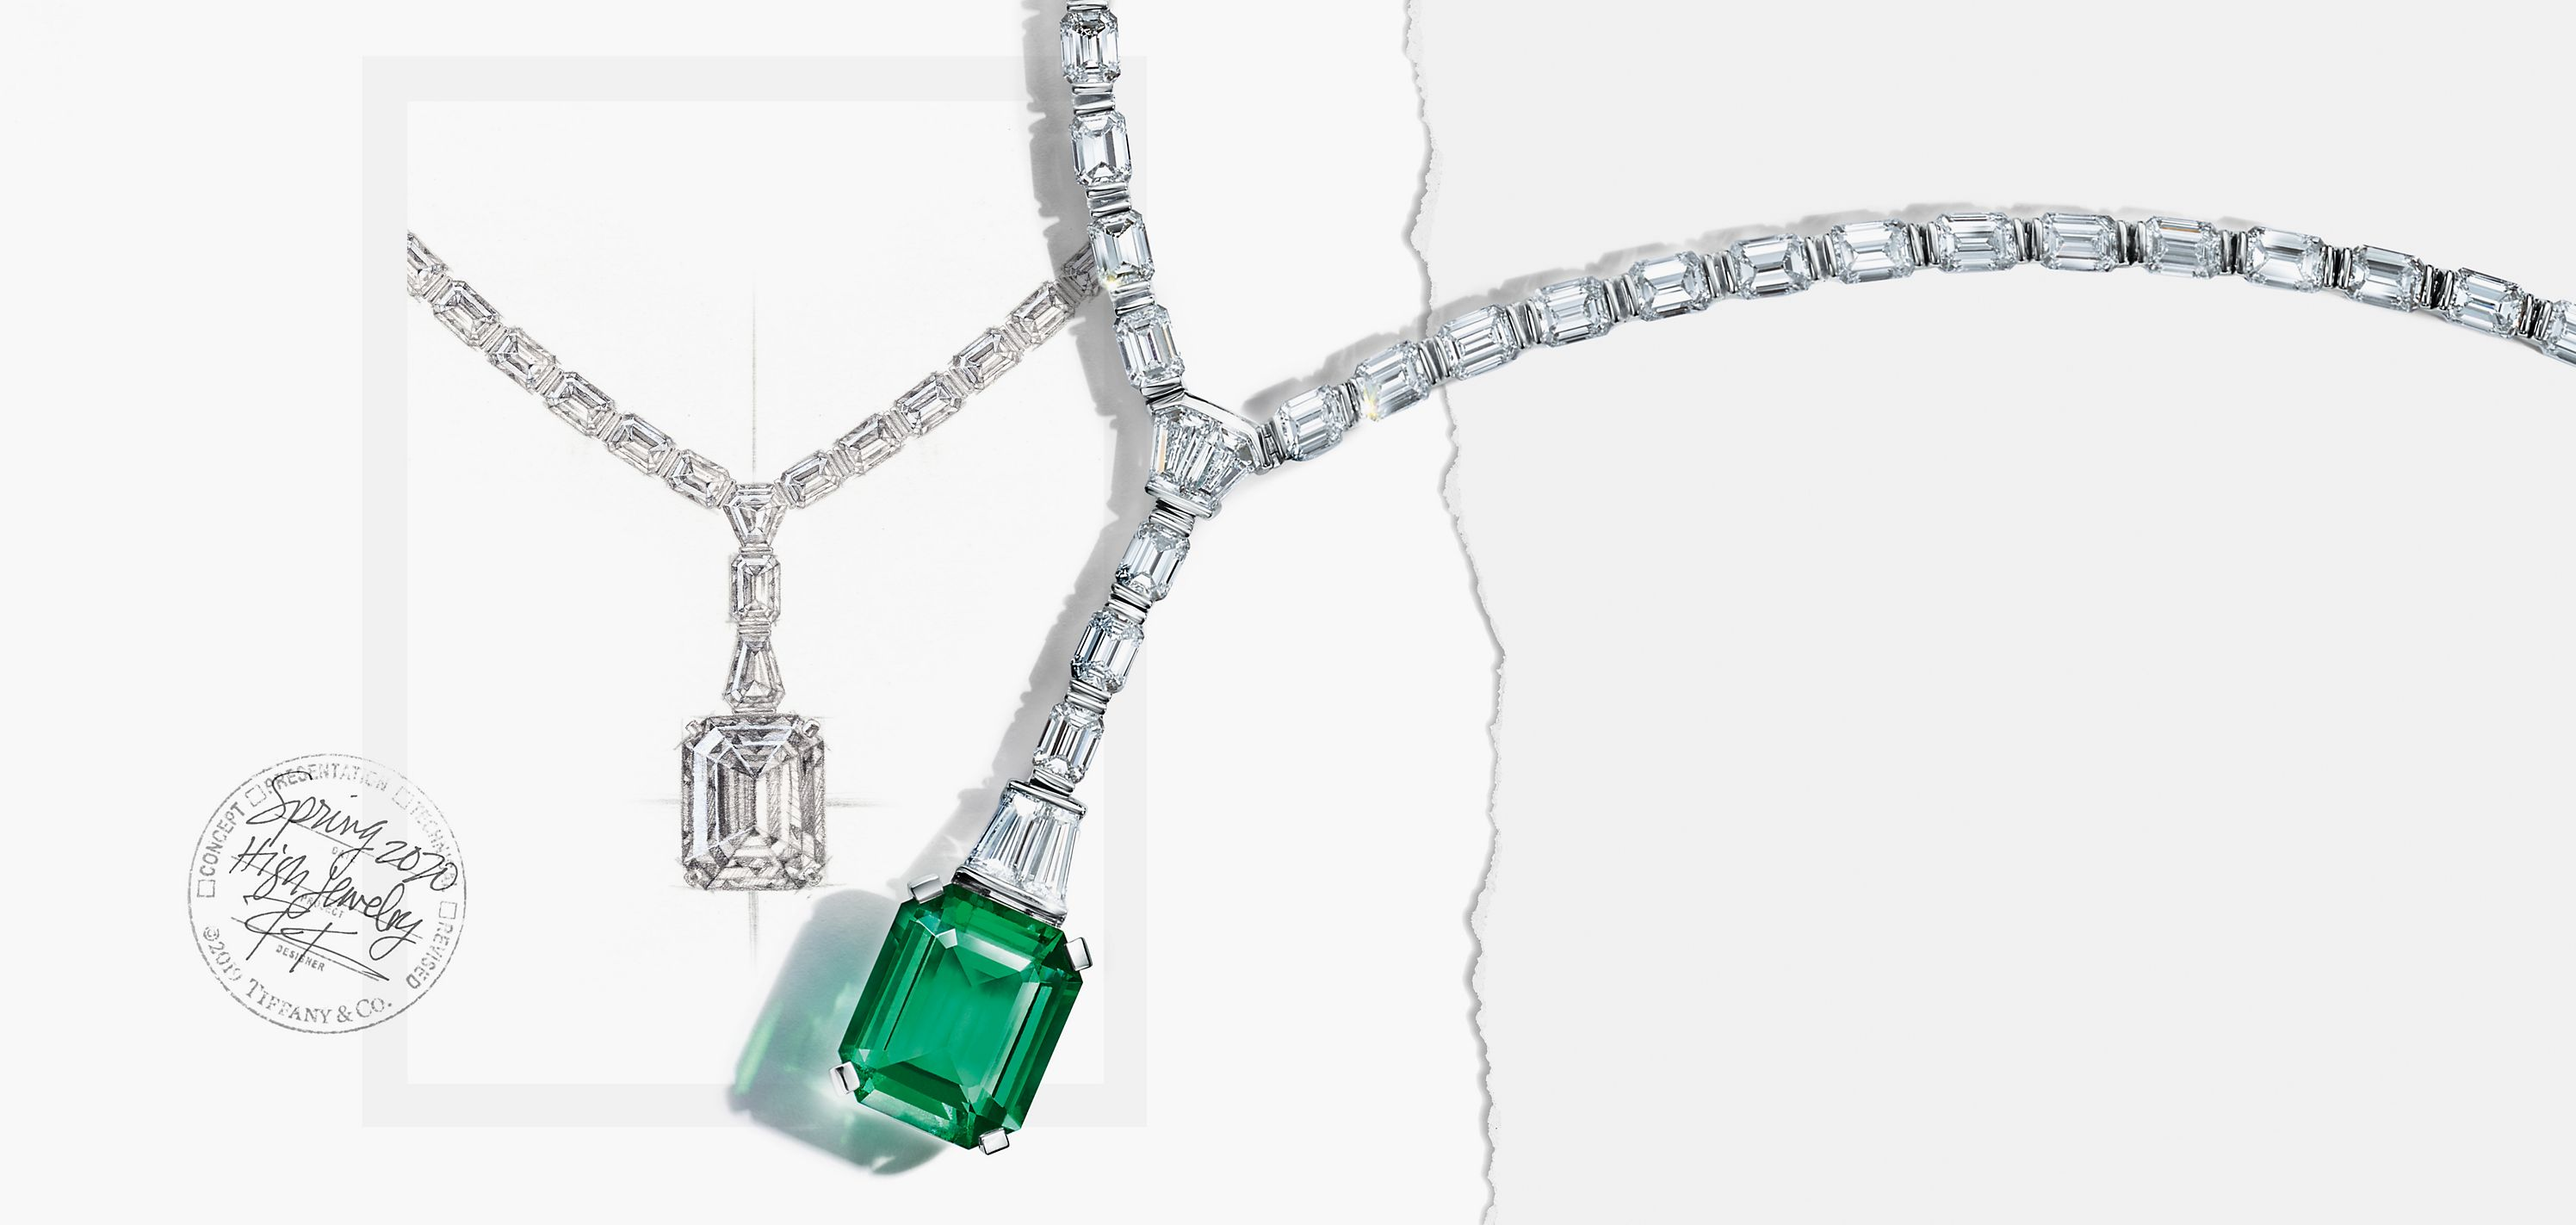 Platinum necklace with an emerald and diamonds